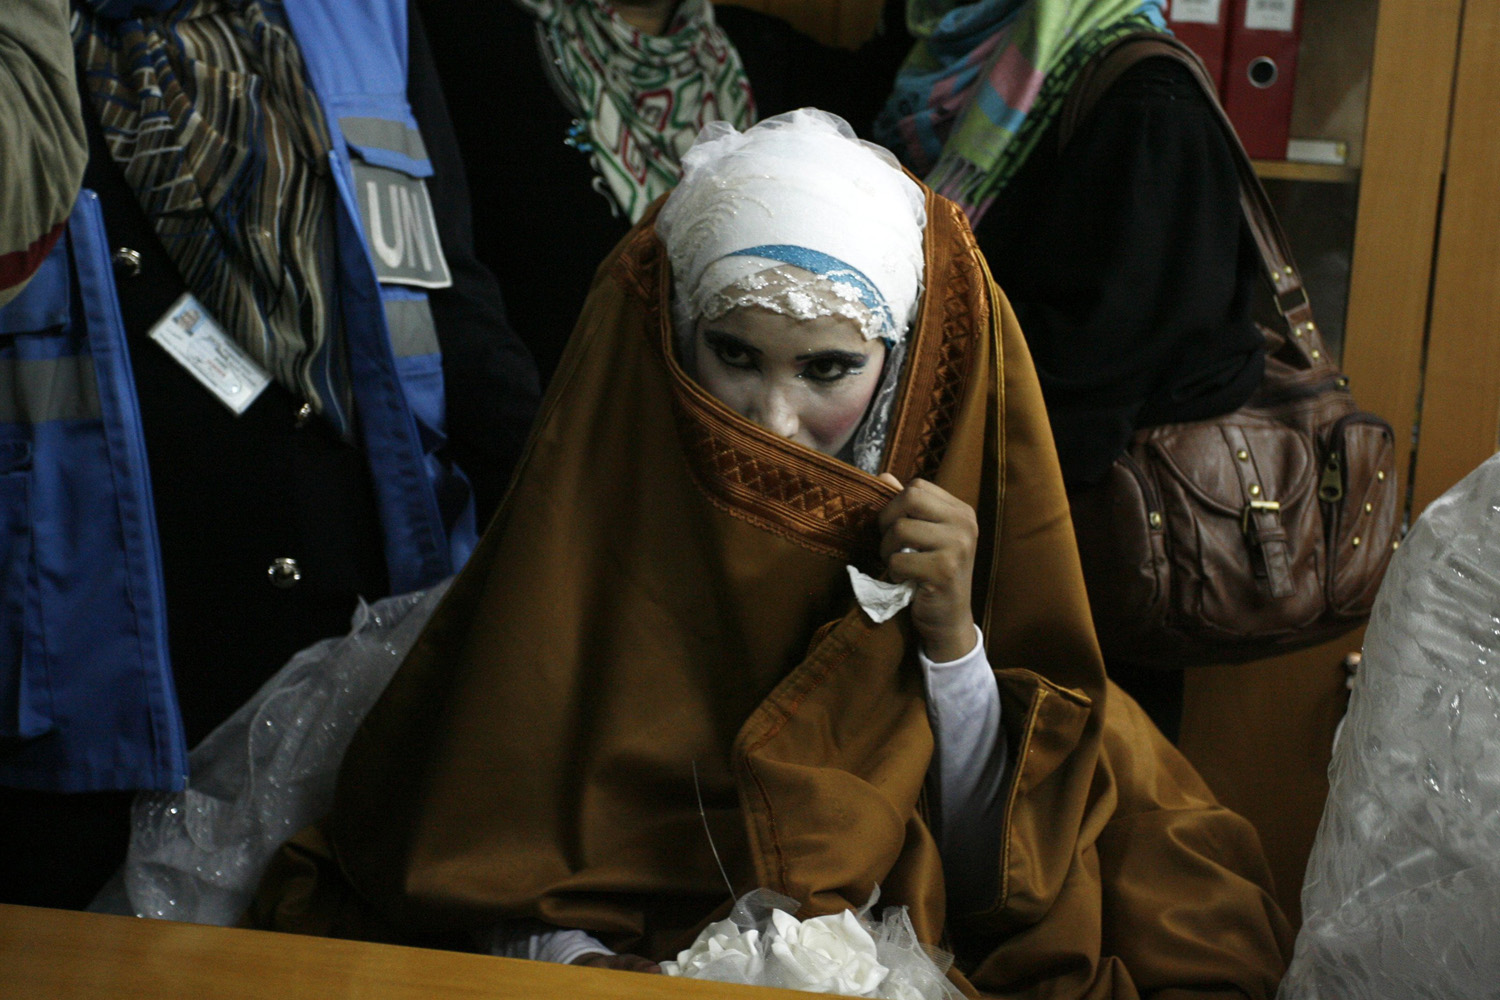 August 17, 2014.  A Palestinian bride, who lost her home during fighting between Hamas and Israel, poses during her wedding ceremony, along with two other couples, at a UN school in Rafah in southern Gaza Strip.